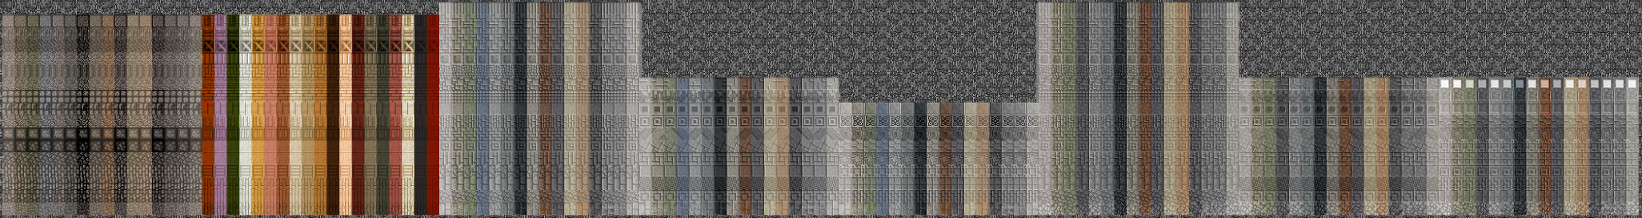 ucw_tfc2_textures_small.jpg